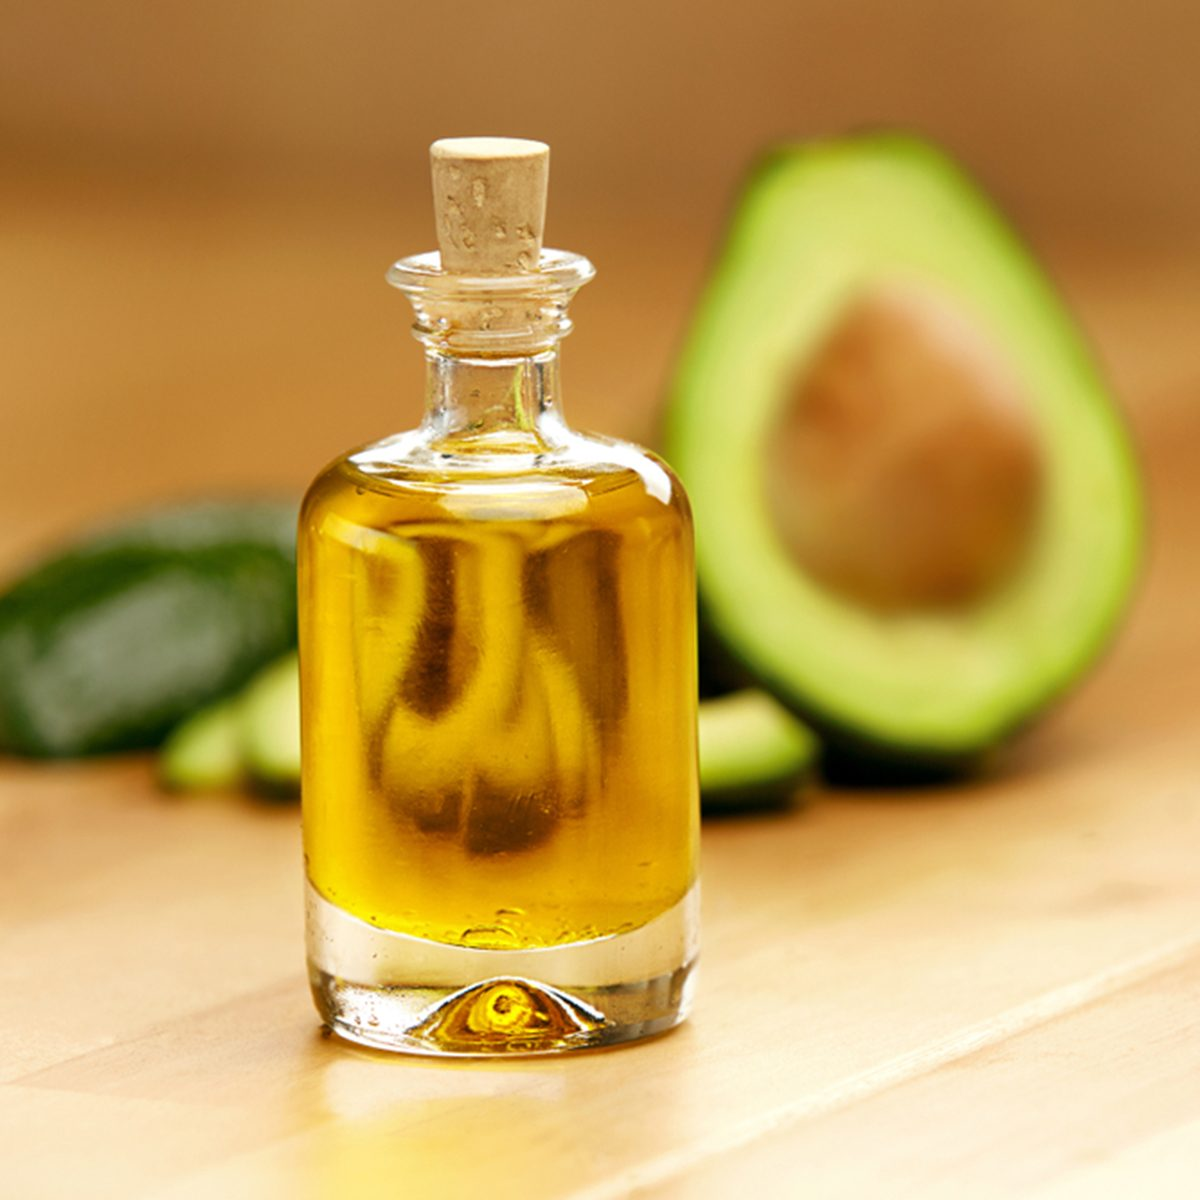 Food Ingredients. Avocado Oil In Bottle With Avocado On Table